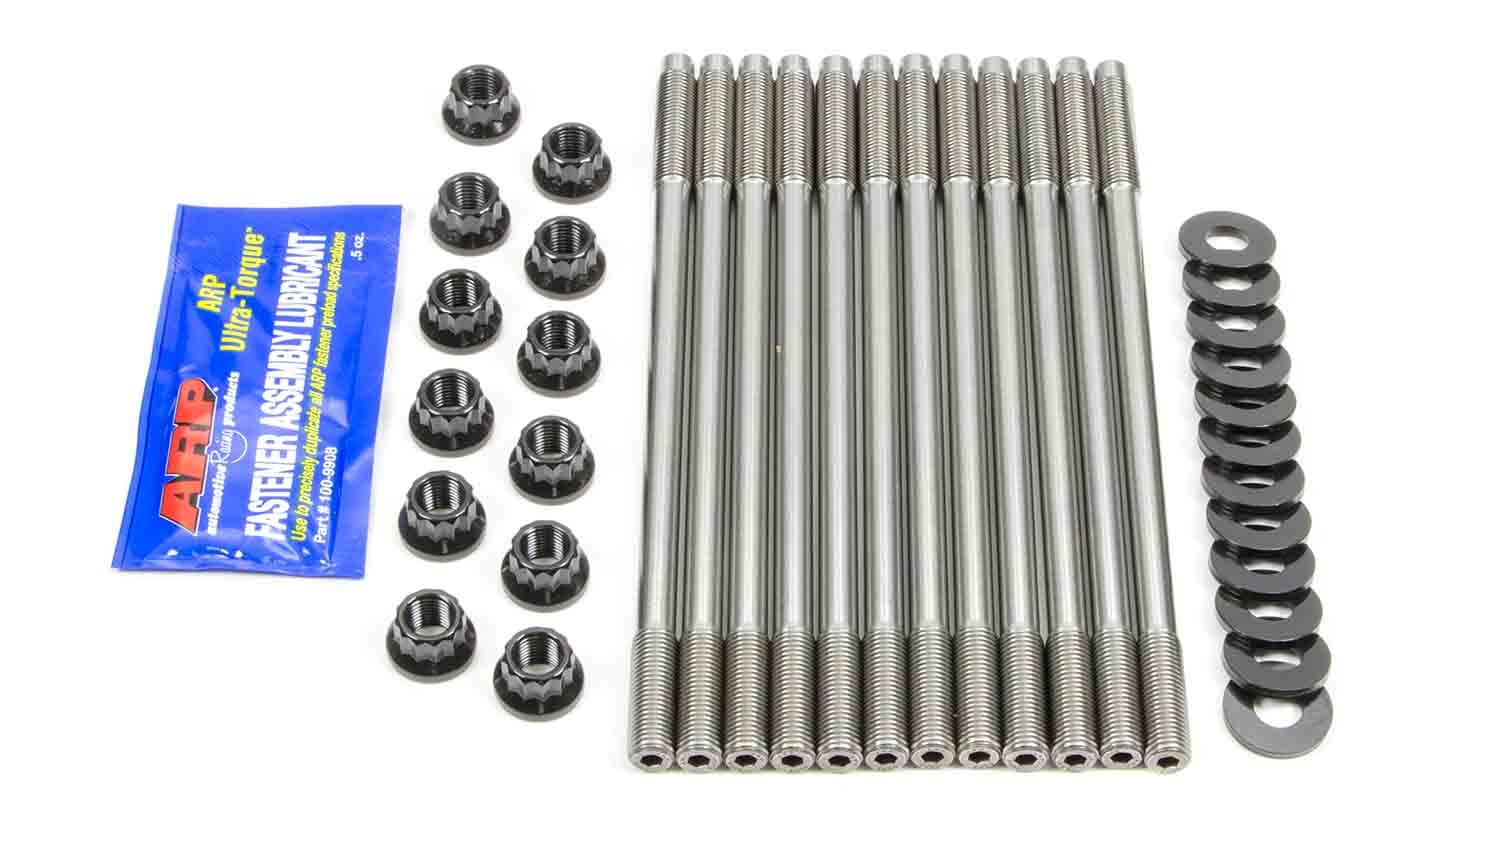 ARP 254-4705 12-Point Head Stud Kit for Small Block Ford